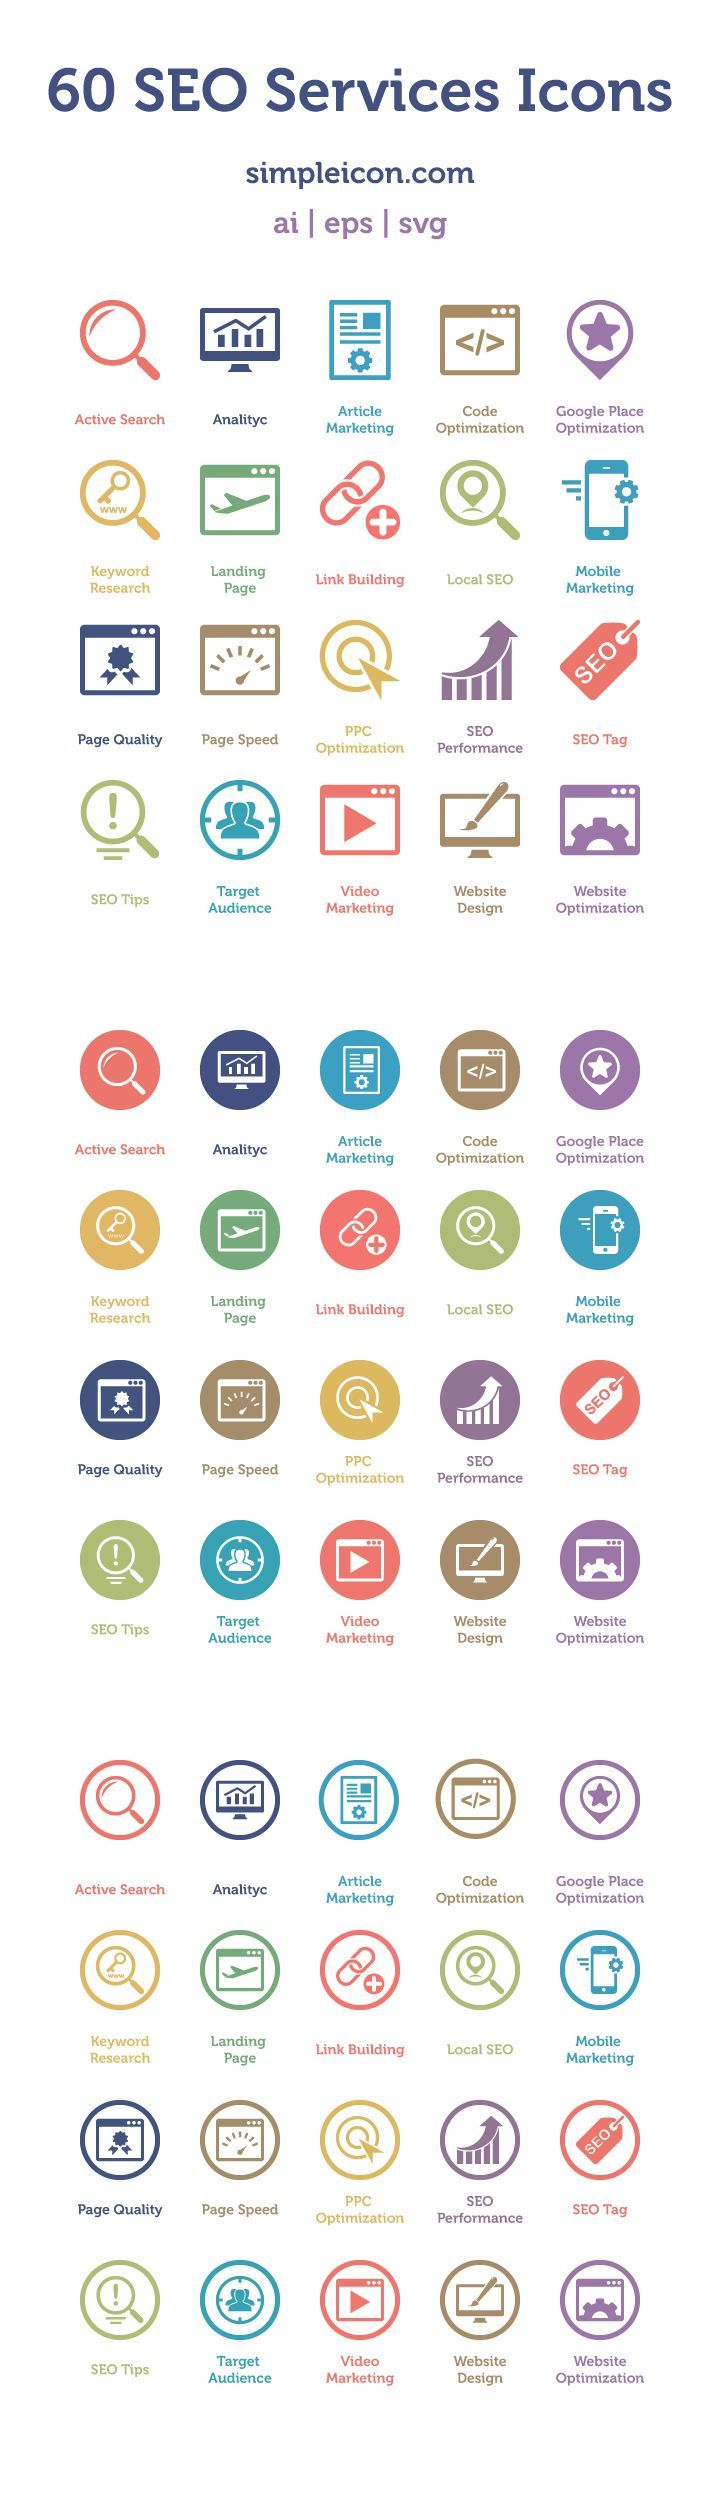 SEO Services Icons: useful set of flat icons that includes 60 different icons http://simpleicon.com/set/60-seo-services-icons/